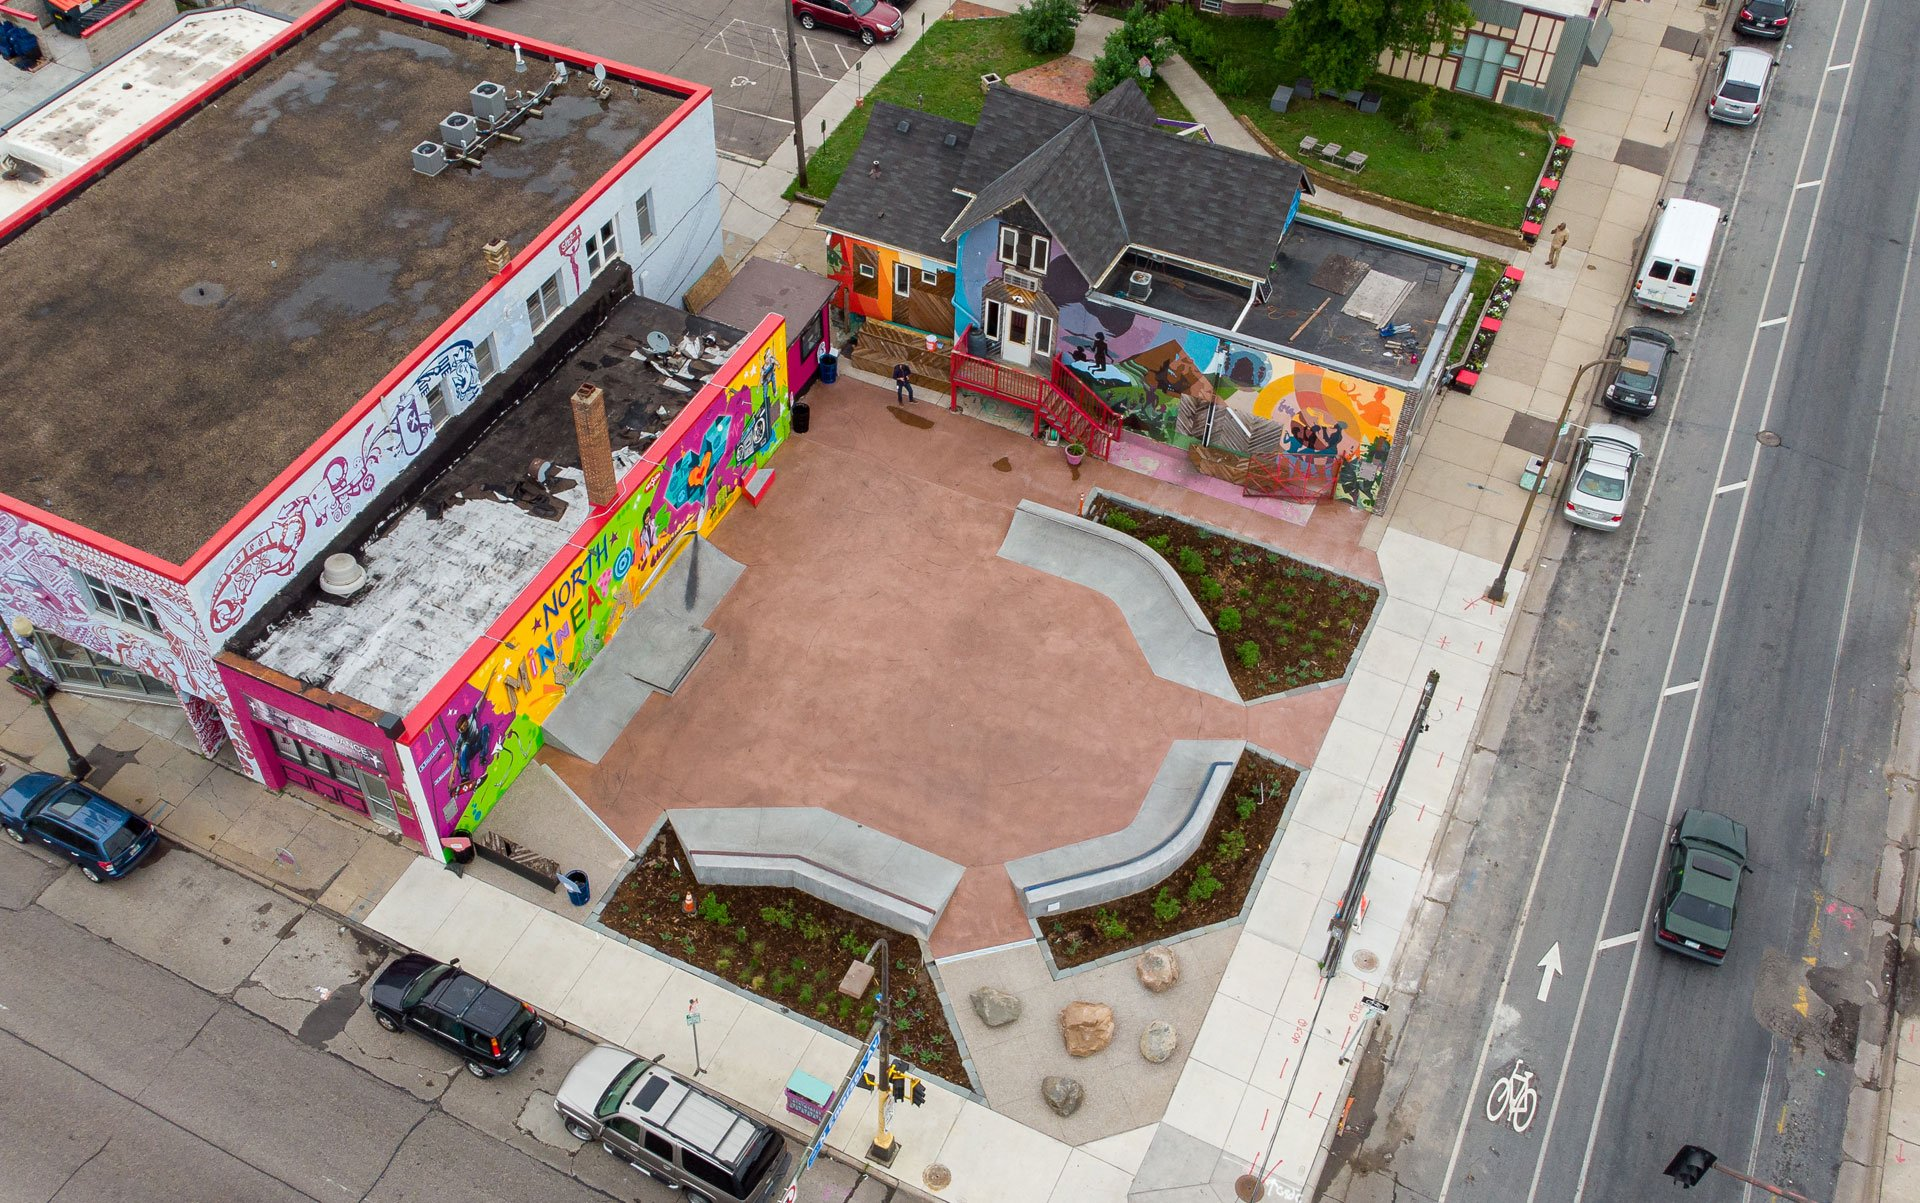 An aerial view of the skate-able art plaza